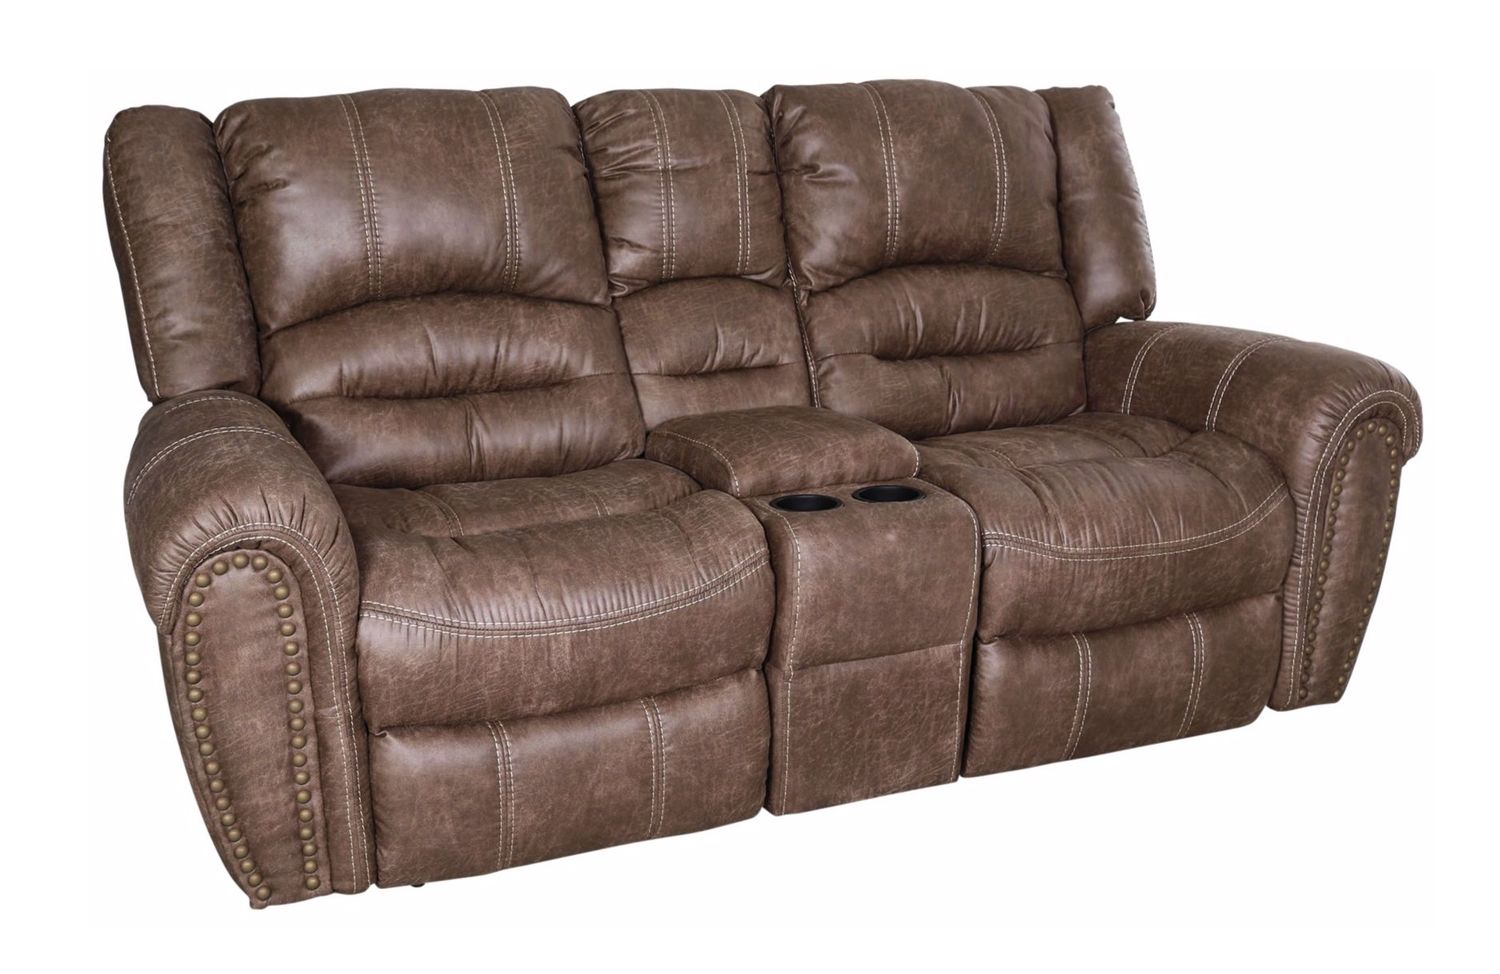 levin reclining item furniture console loveseats flexsteel product living with glider arturo video loveseat seating room additional brown